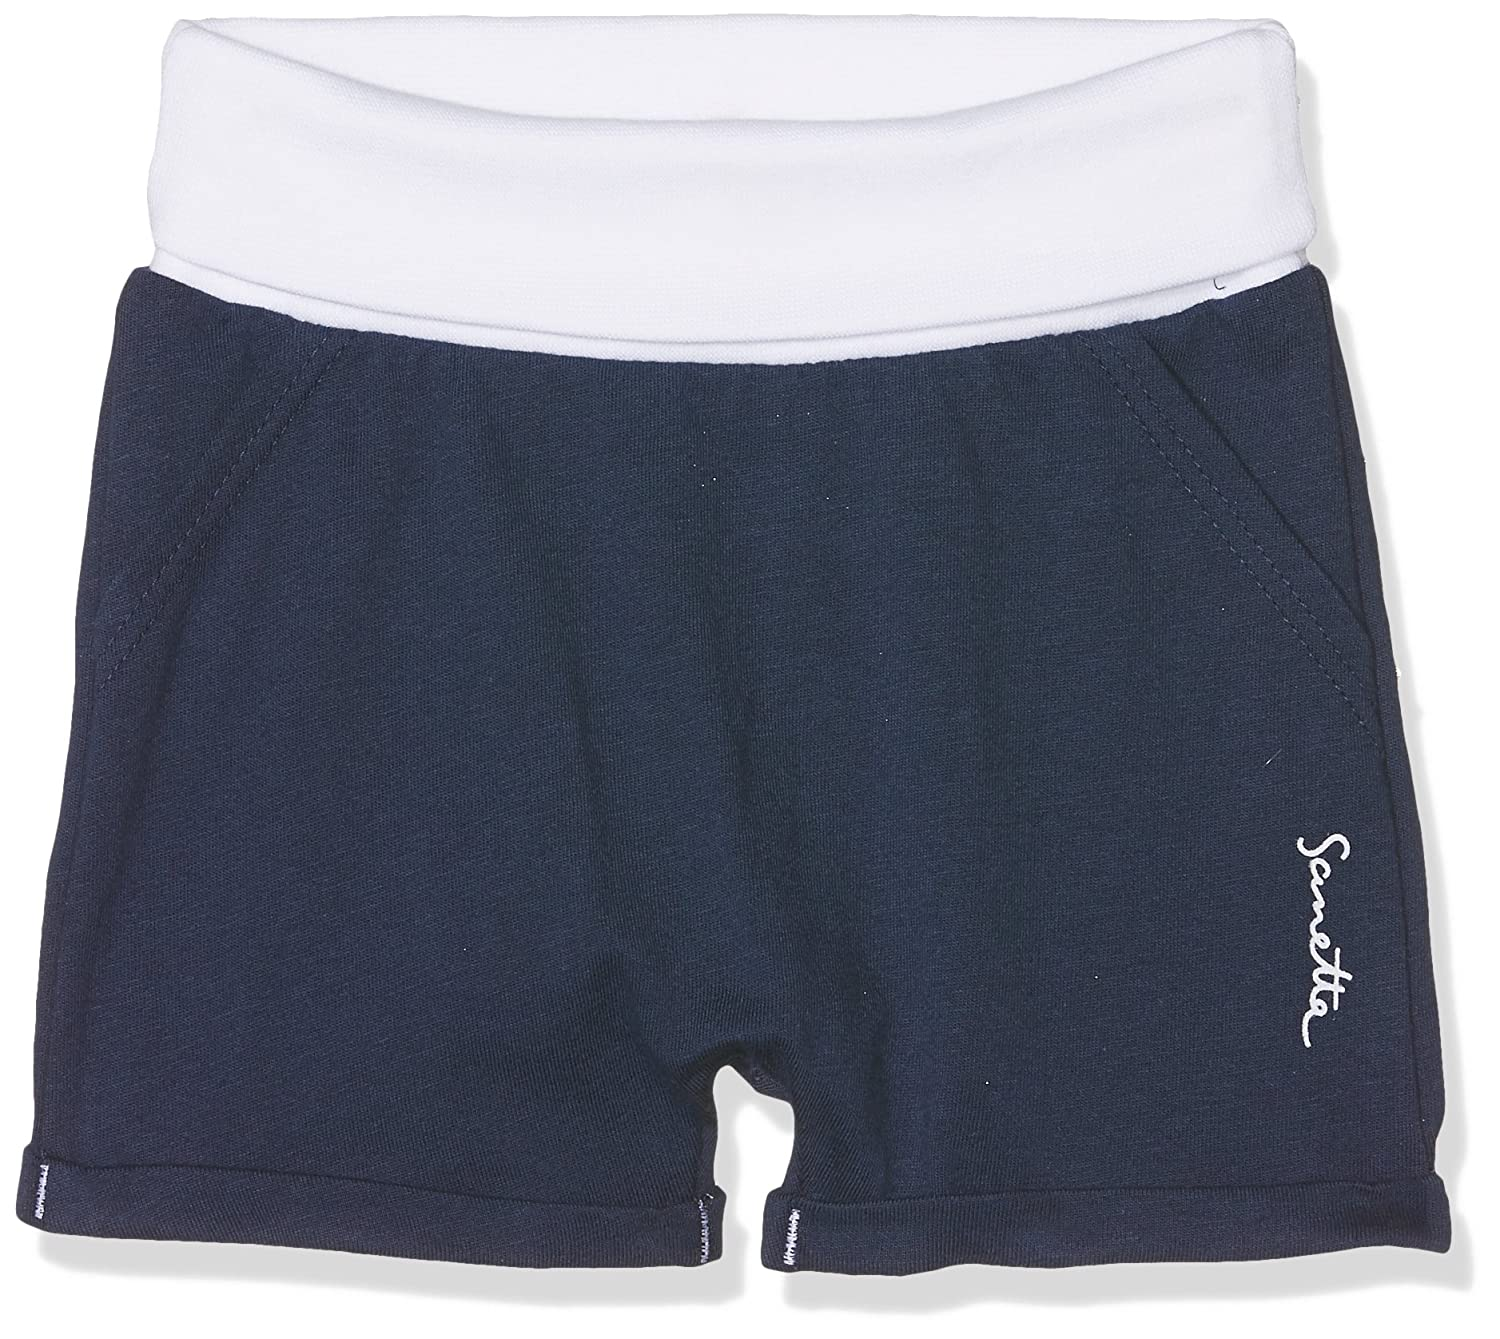 Sanetta Baby Boys' Shorts 901671.0